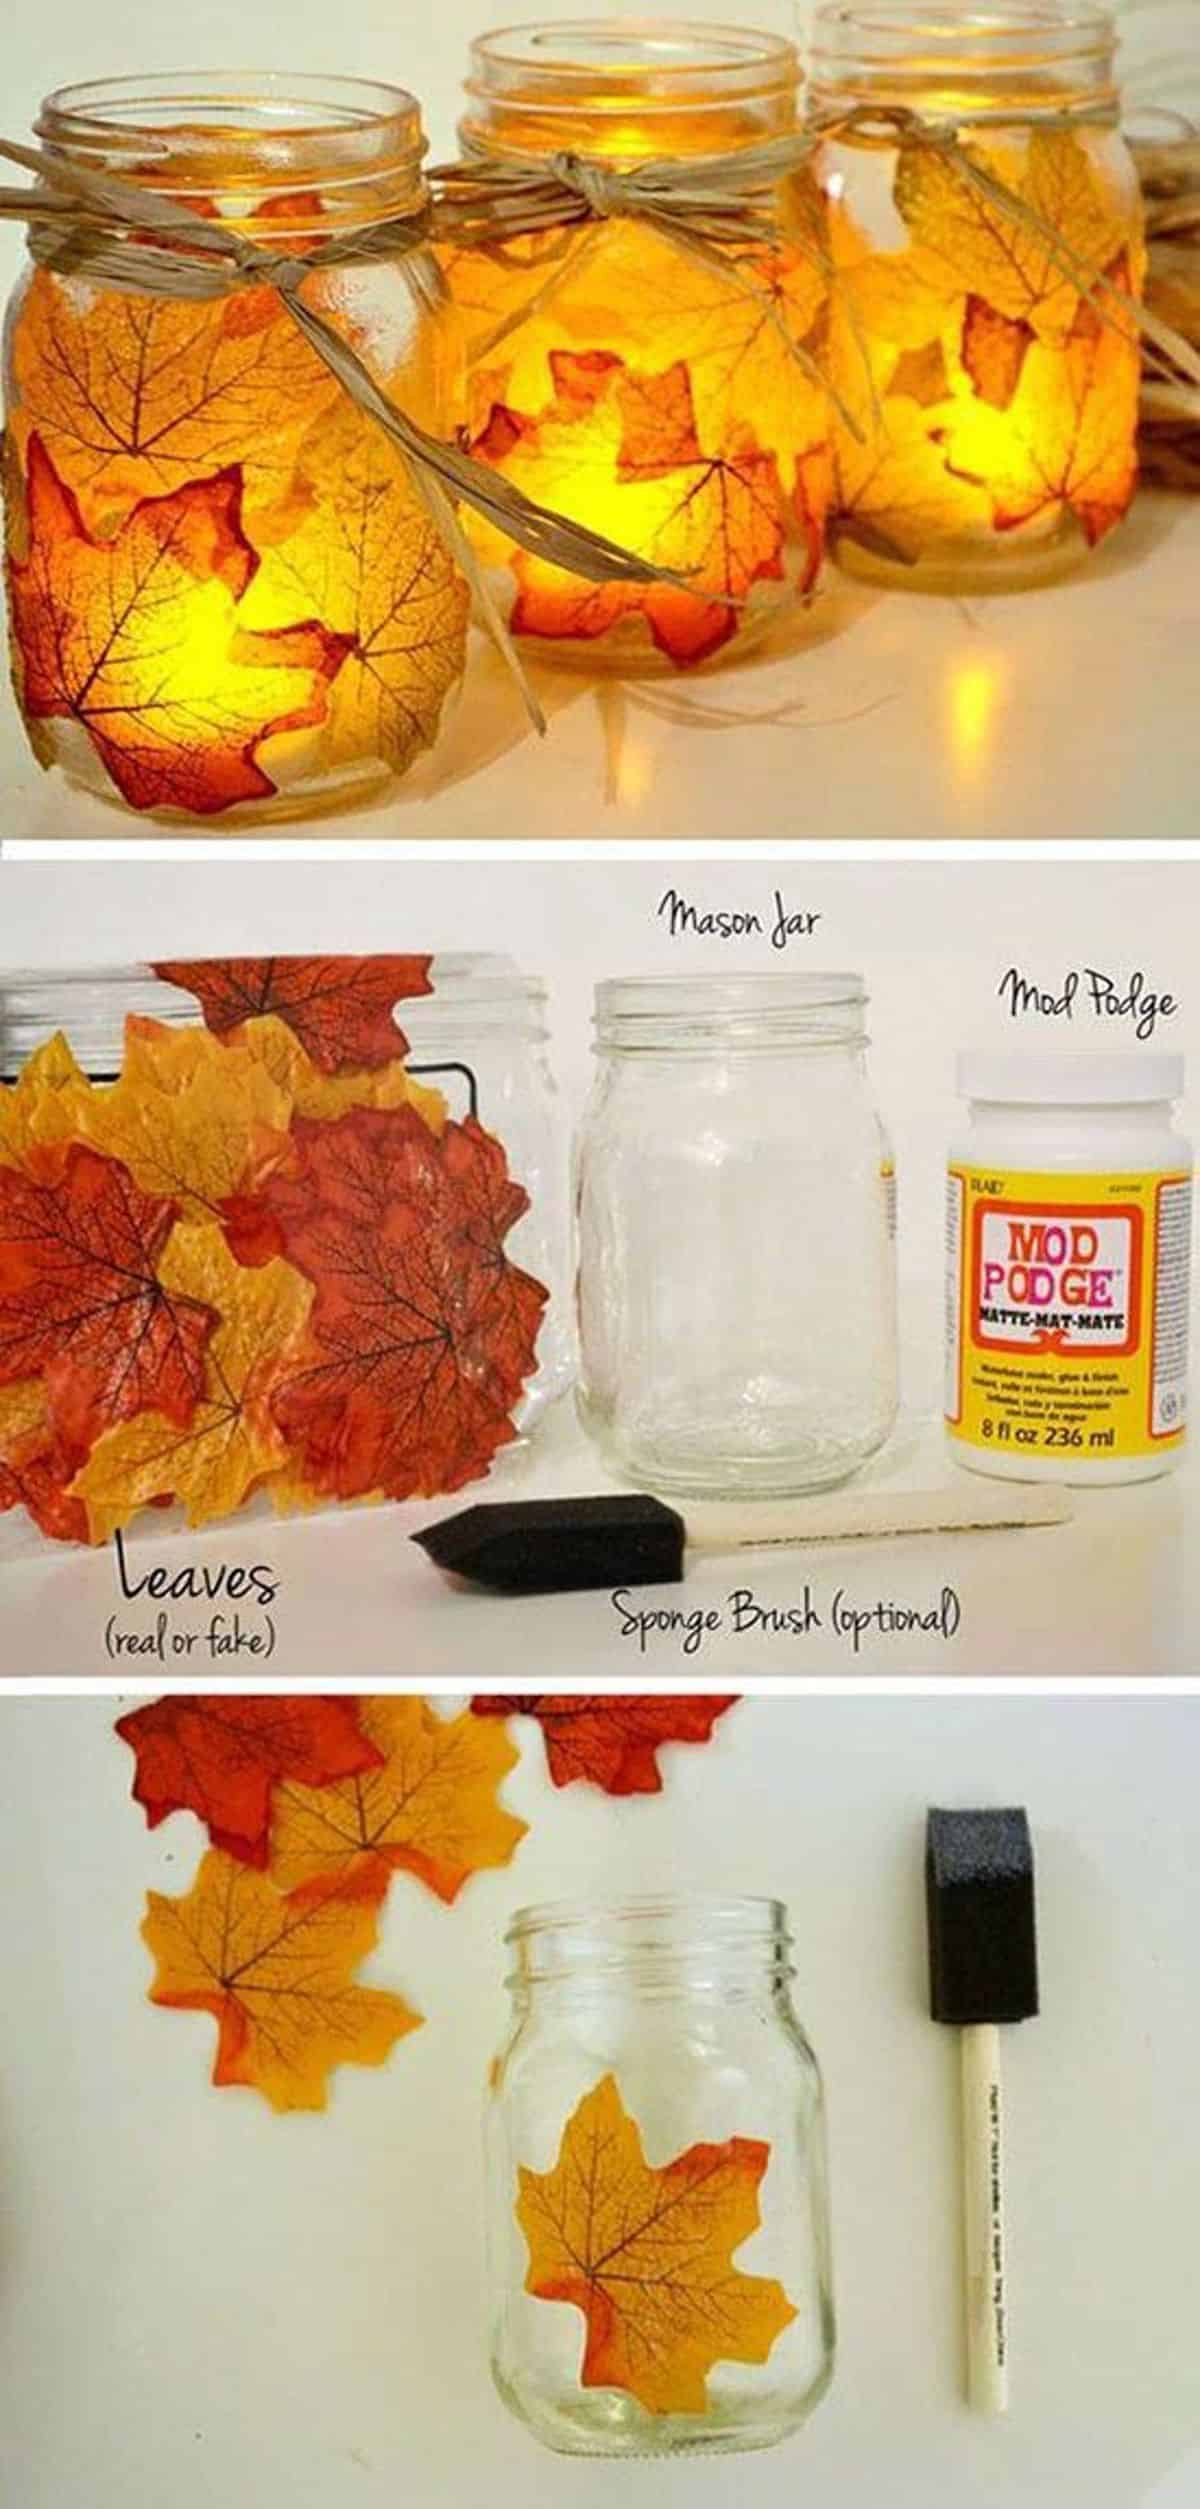 The Autumn Leaf Candle Holder